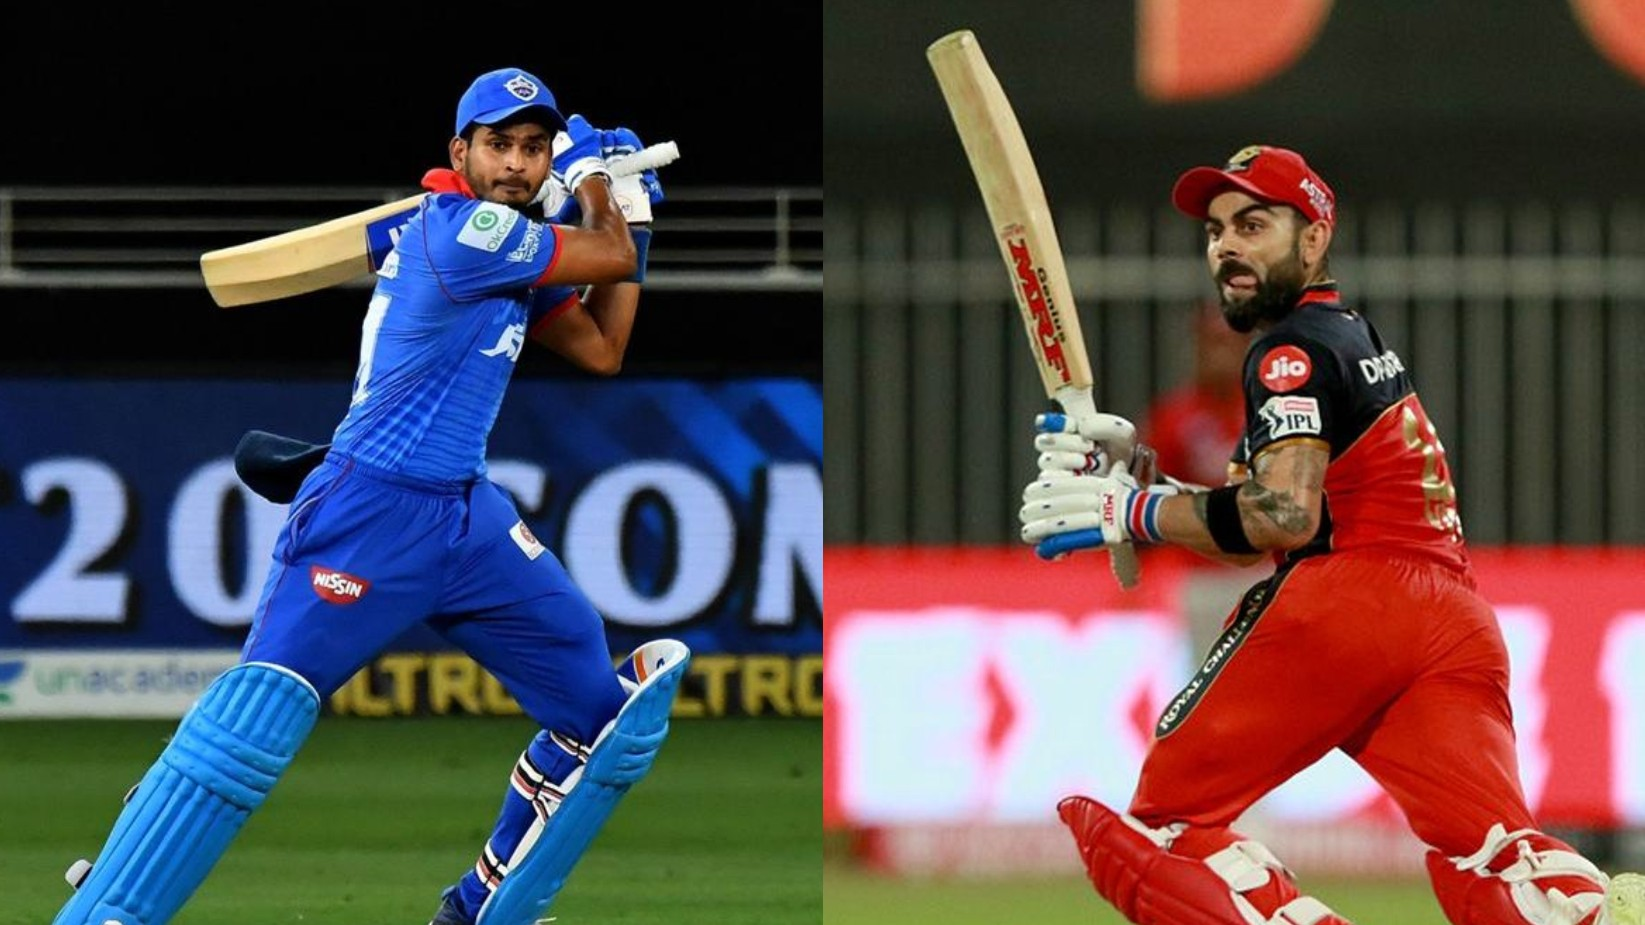 IPL 2020: Match 55, DC v RCB - COC Predicted Playing XIs